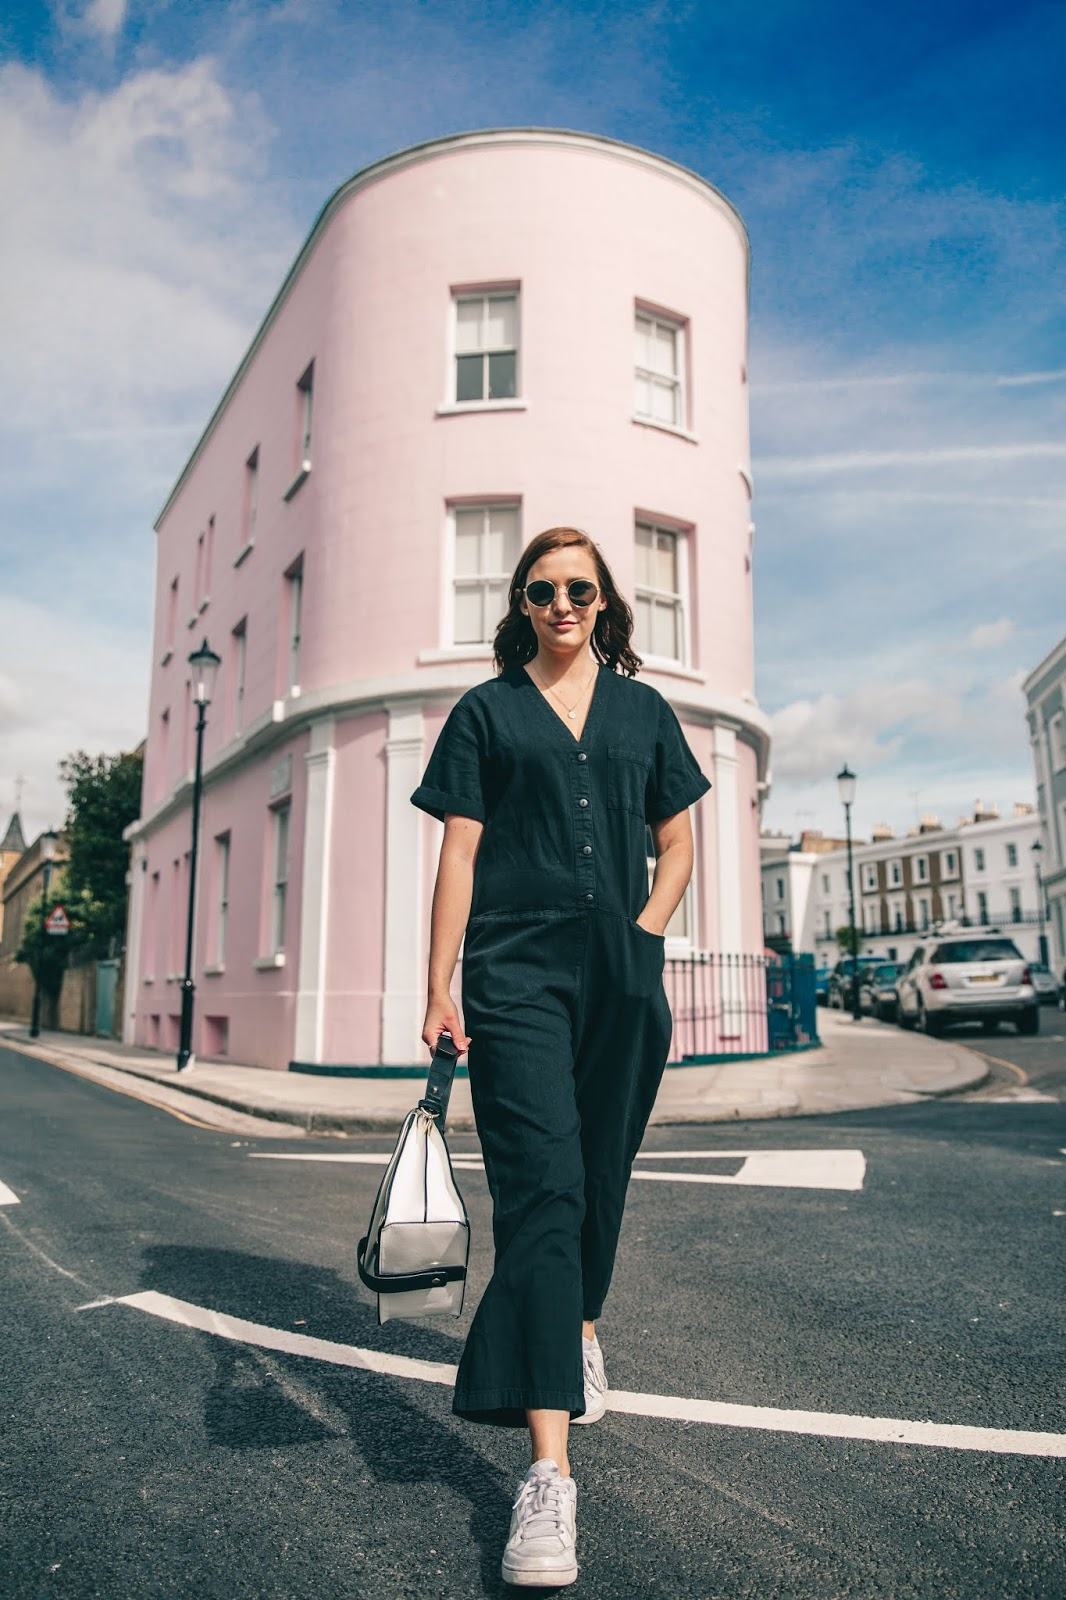 Monki Jumpsuit London Pink House Holland Park OOTD Fashion Blog - My Month Long Shopping Ban - The Results // Lauren Rose Style Blogger London